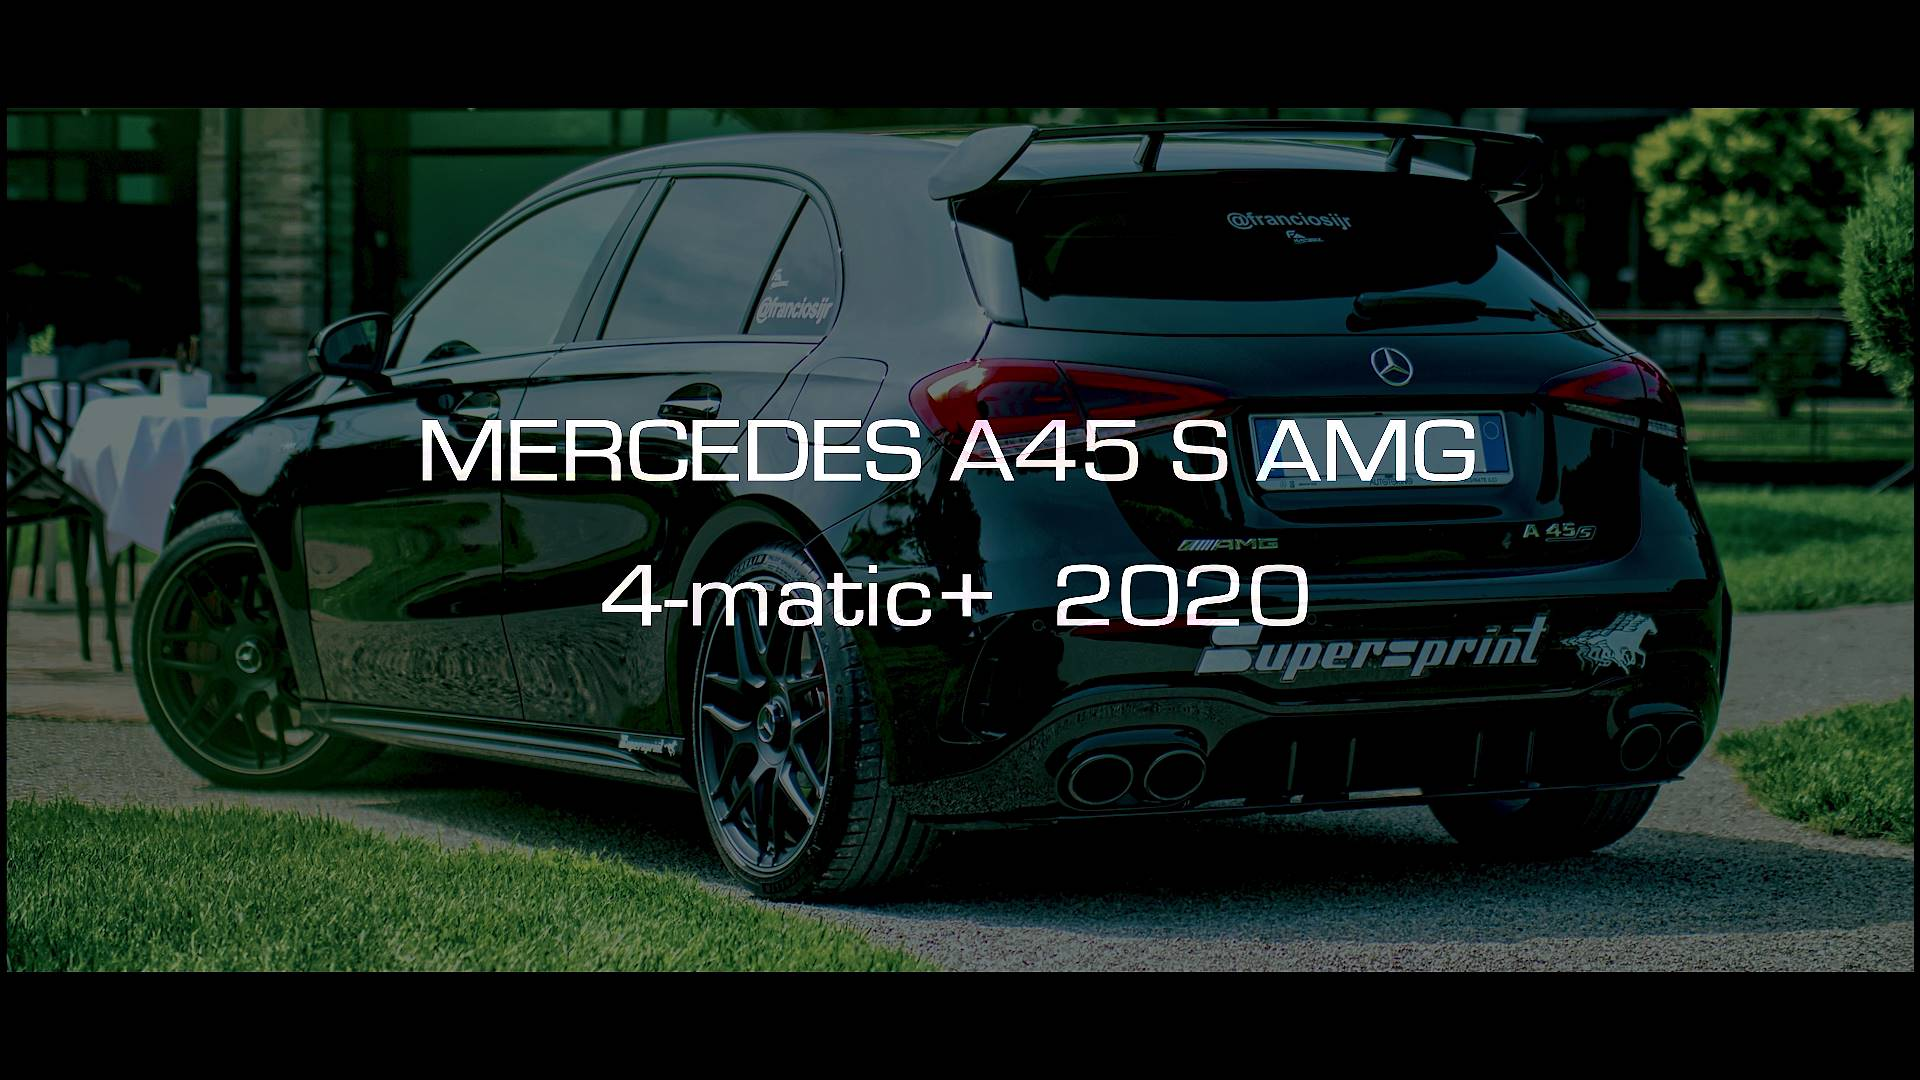 Supersprint exhaust for MERCEDES W177 A 45 S AMG 4-Matic+ (2.0T - 421 Hp) 2020 -> (with valve)